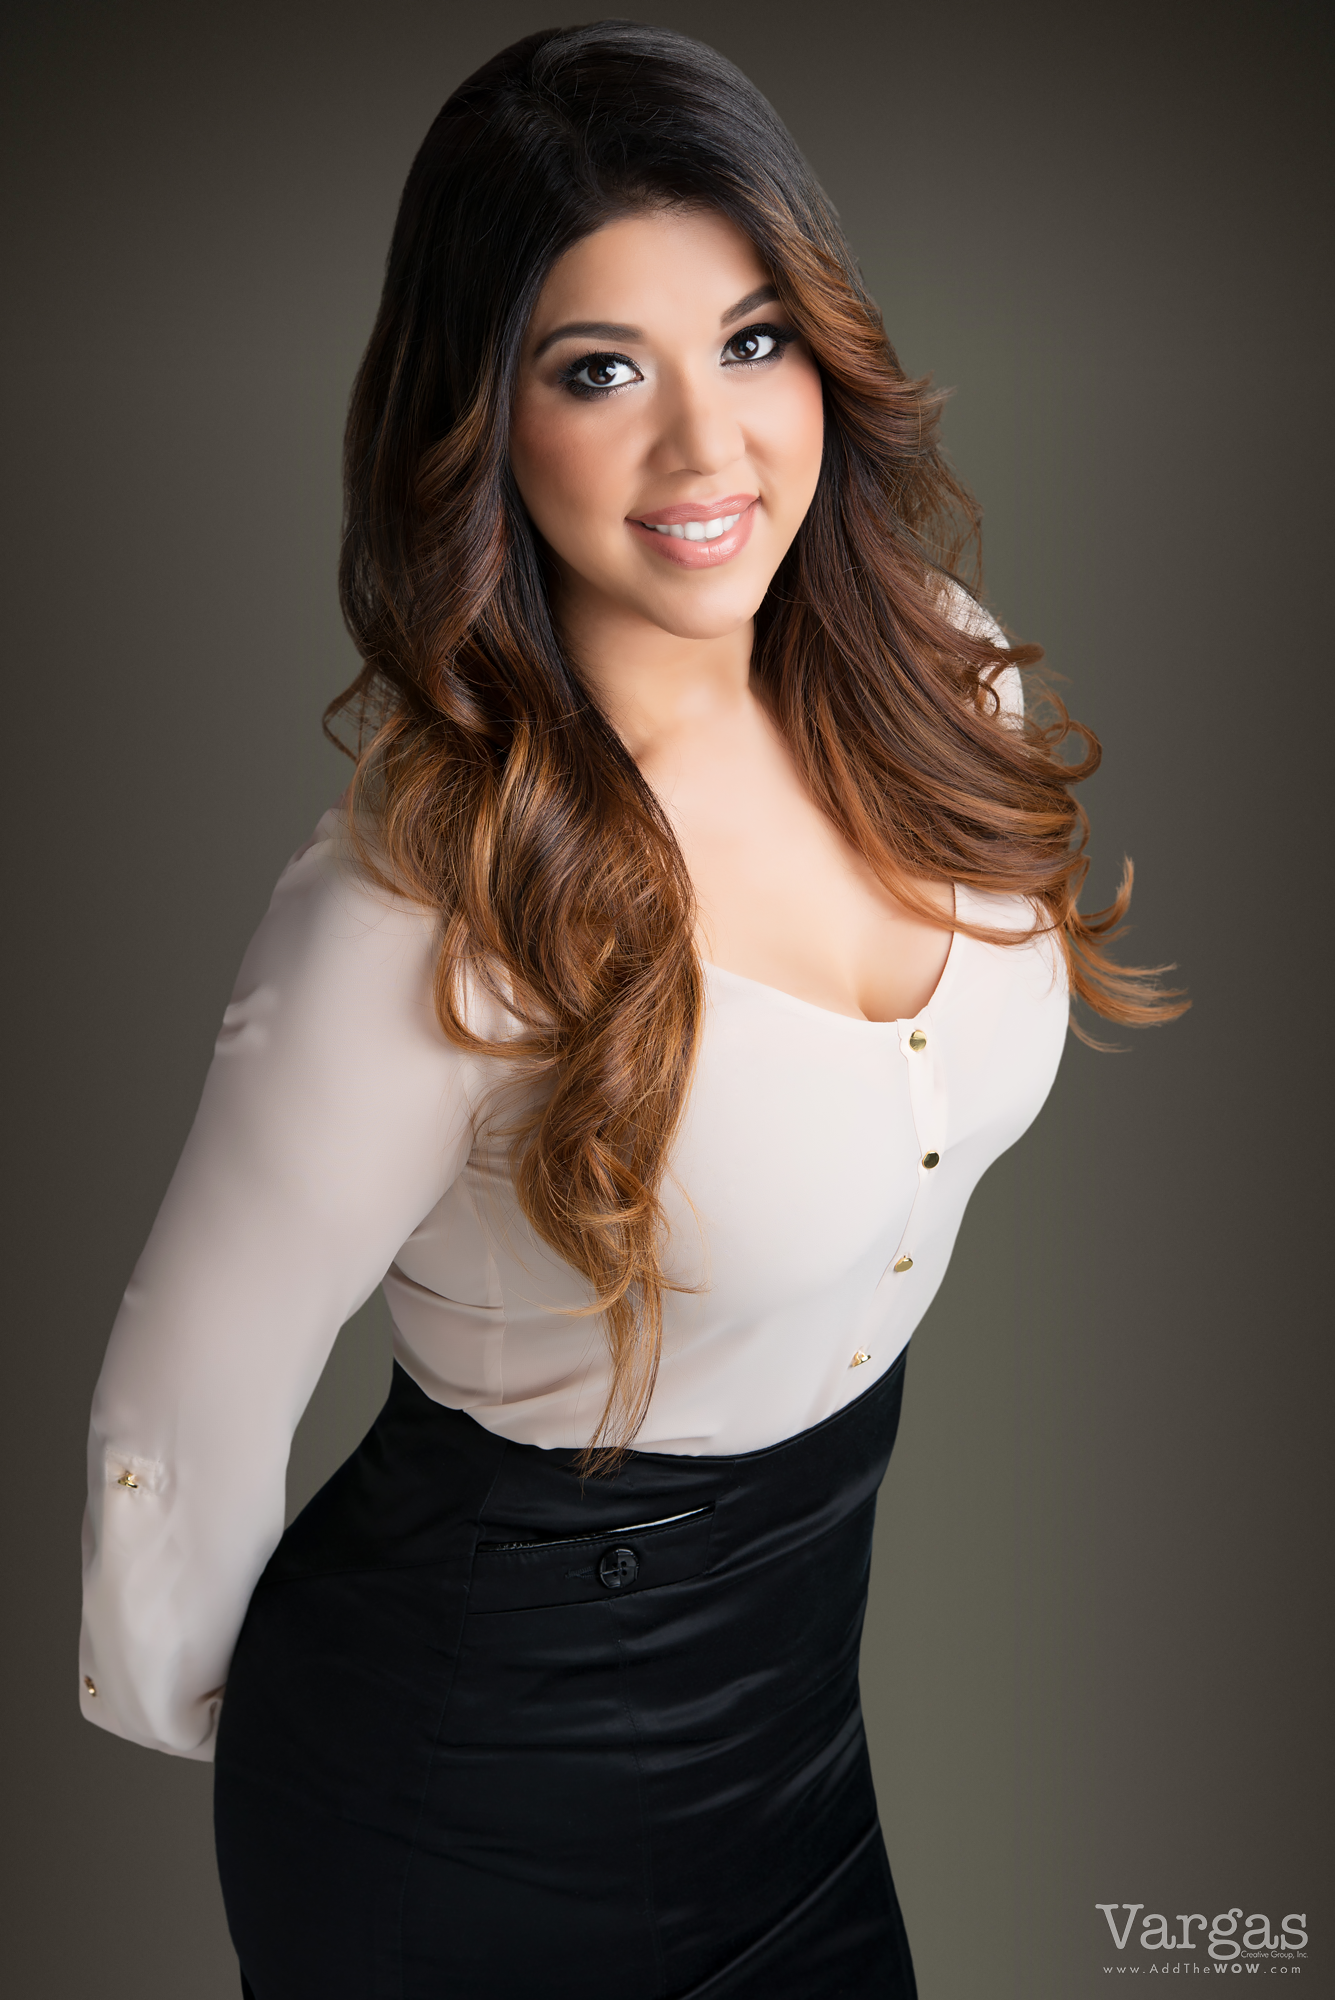 Wendy-Espinoza-Realtor-Real-Estate-Agent-Business-Portrait-Head-Shot.png